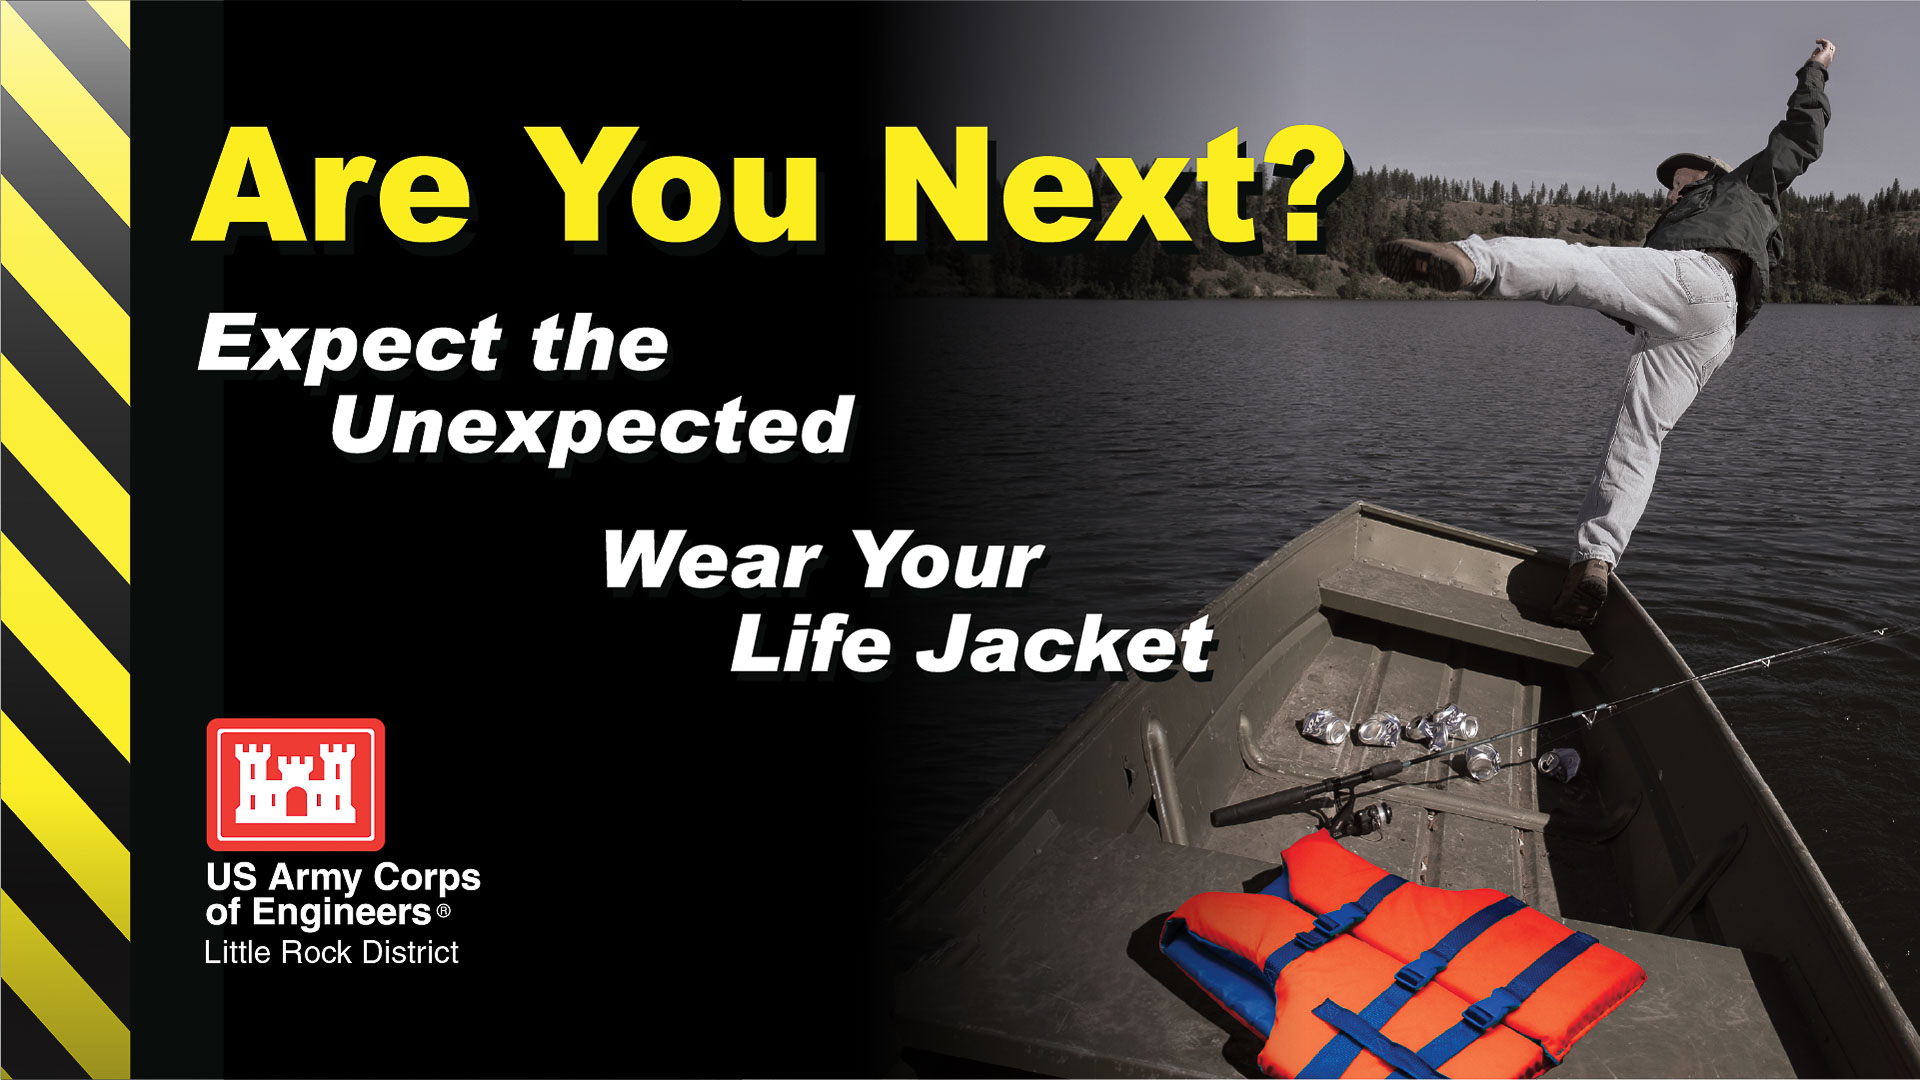 Water Safety Are You Next - Table Rock Lake